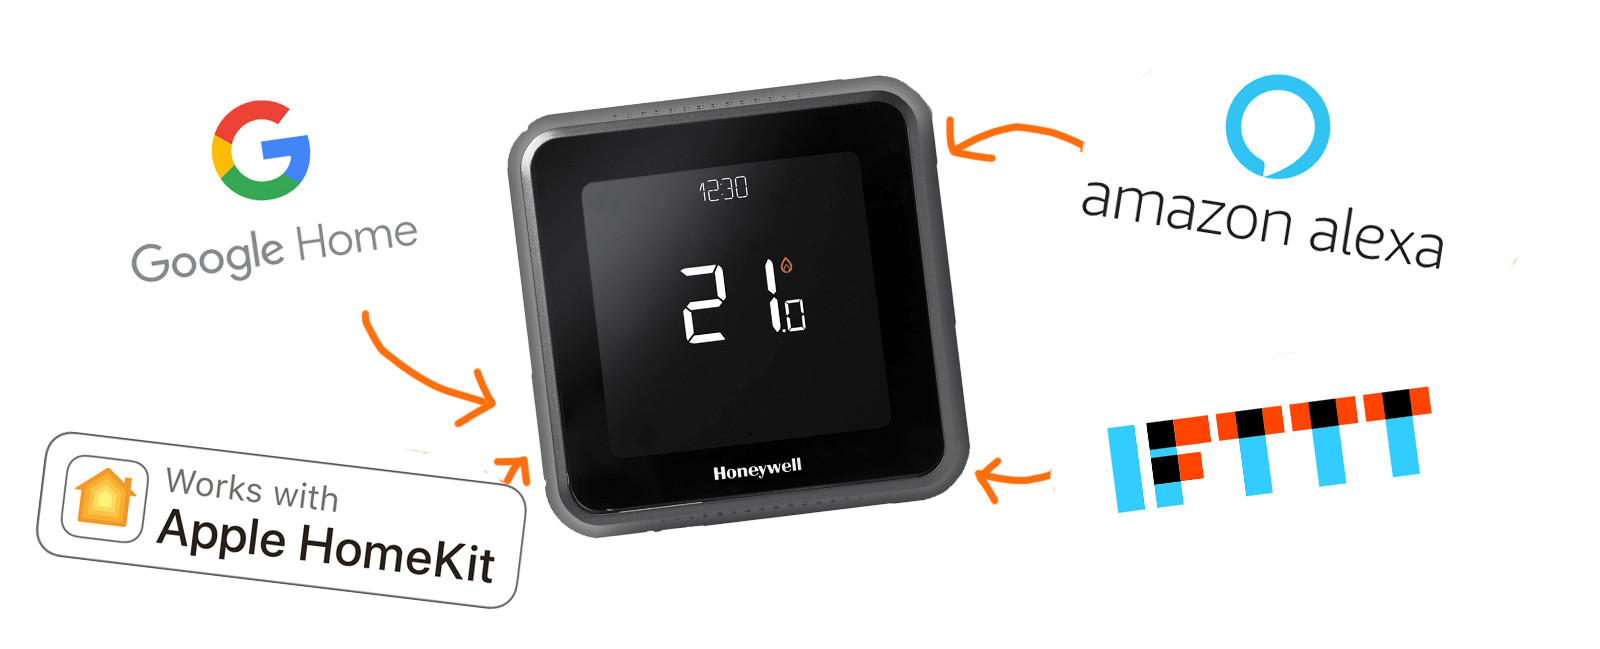 Honeywell T6 Thermostat Compatibility